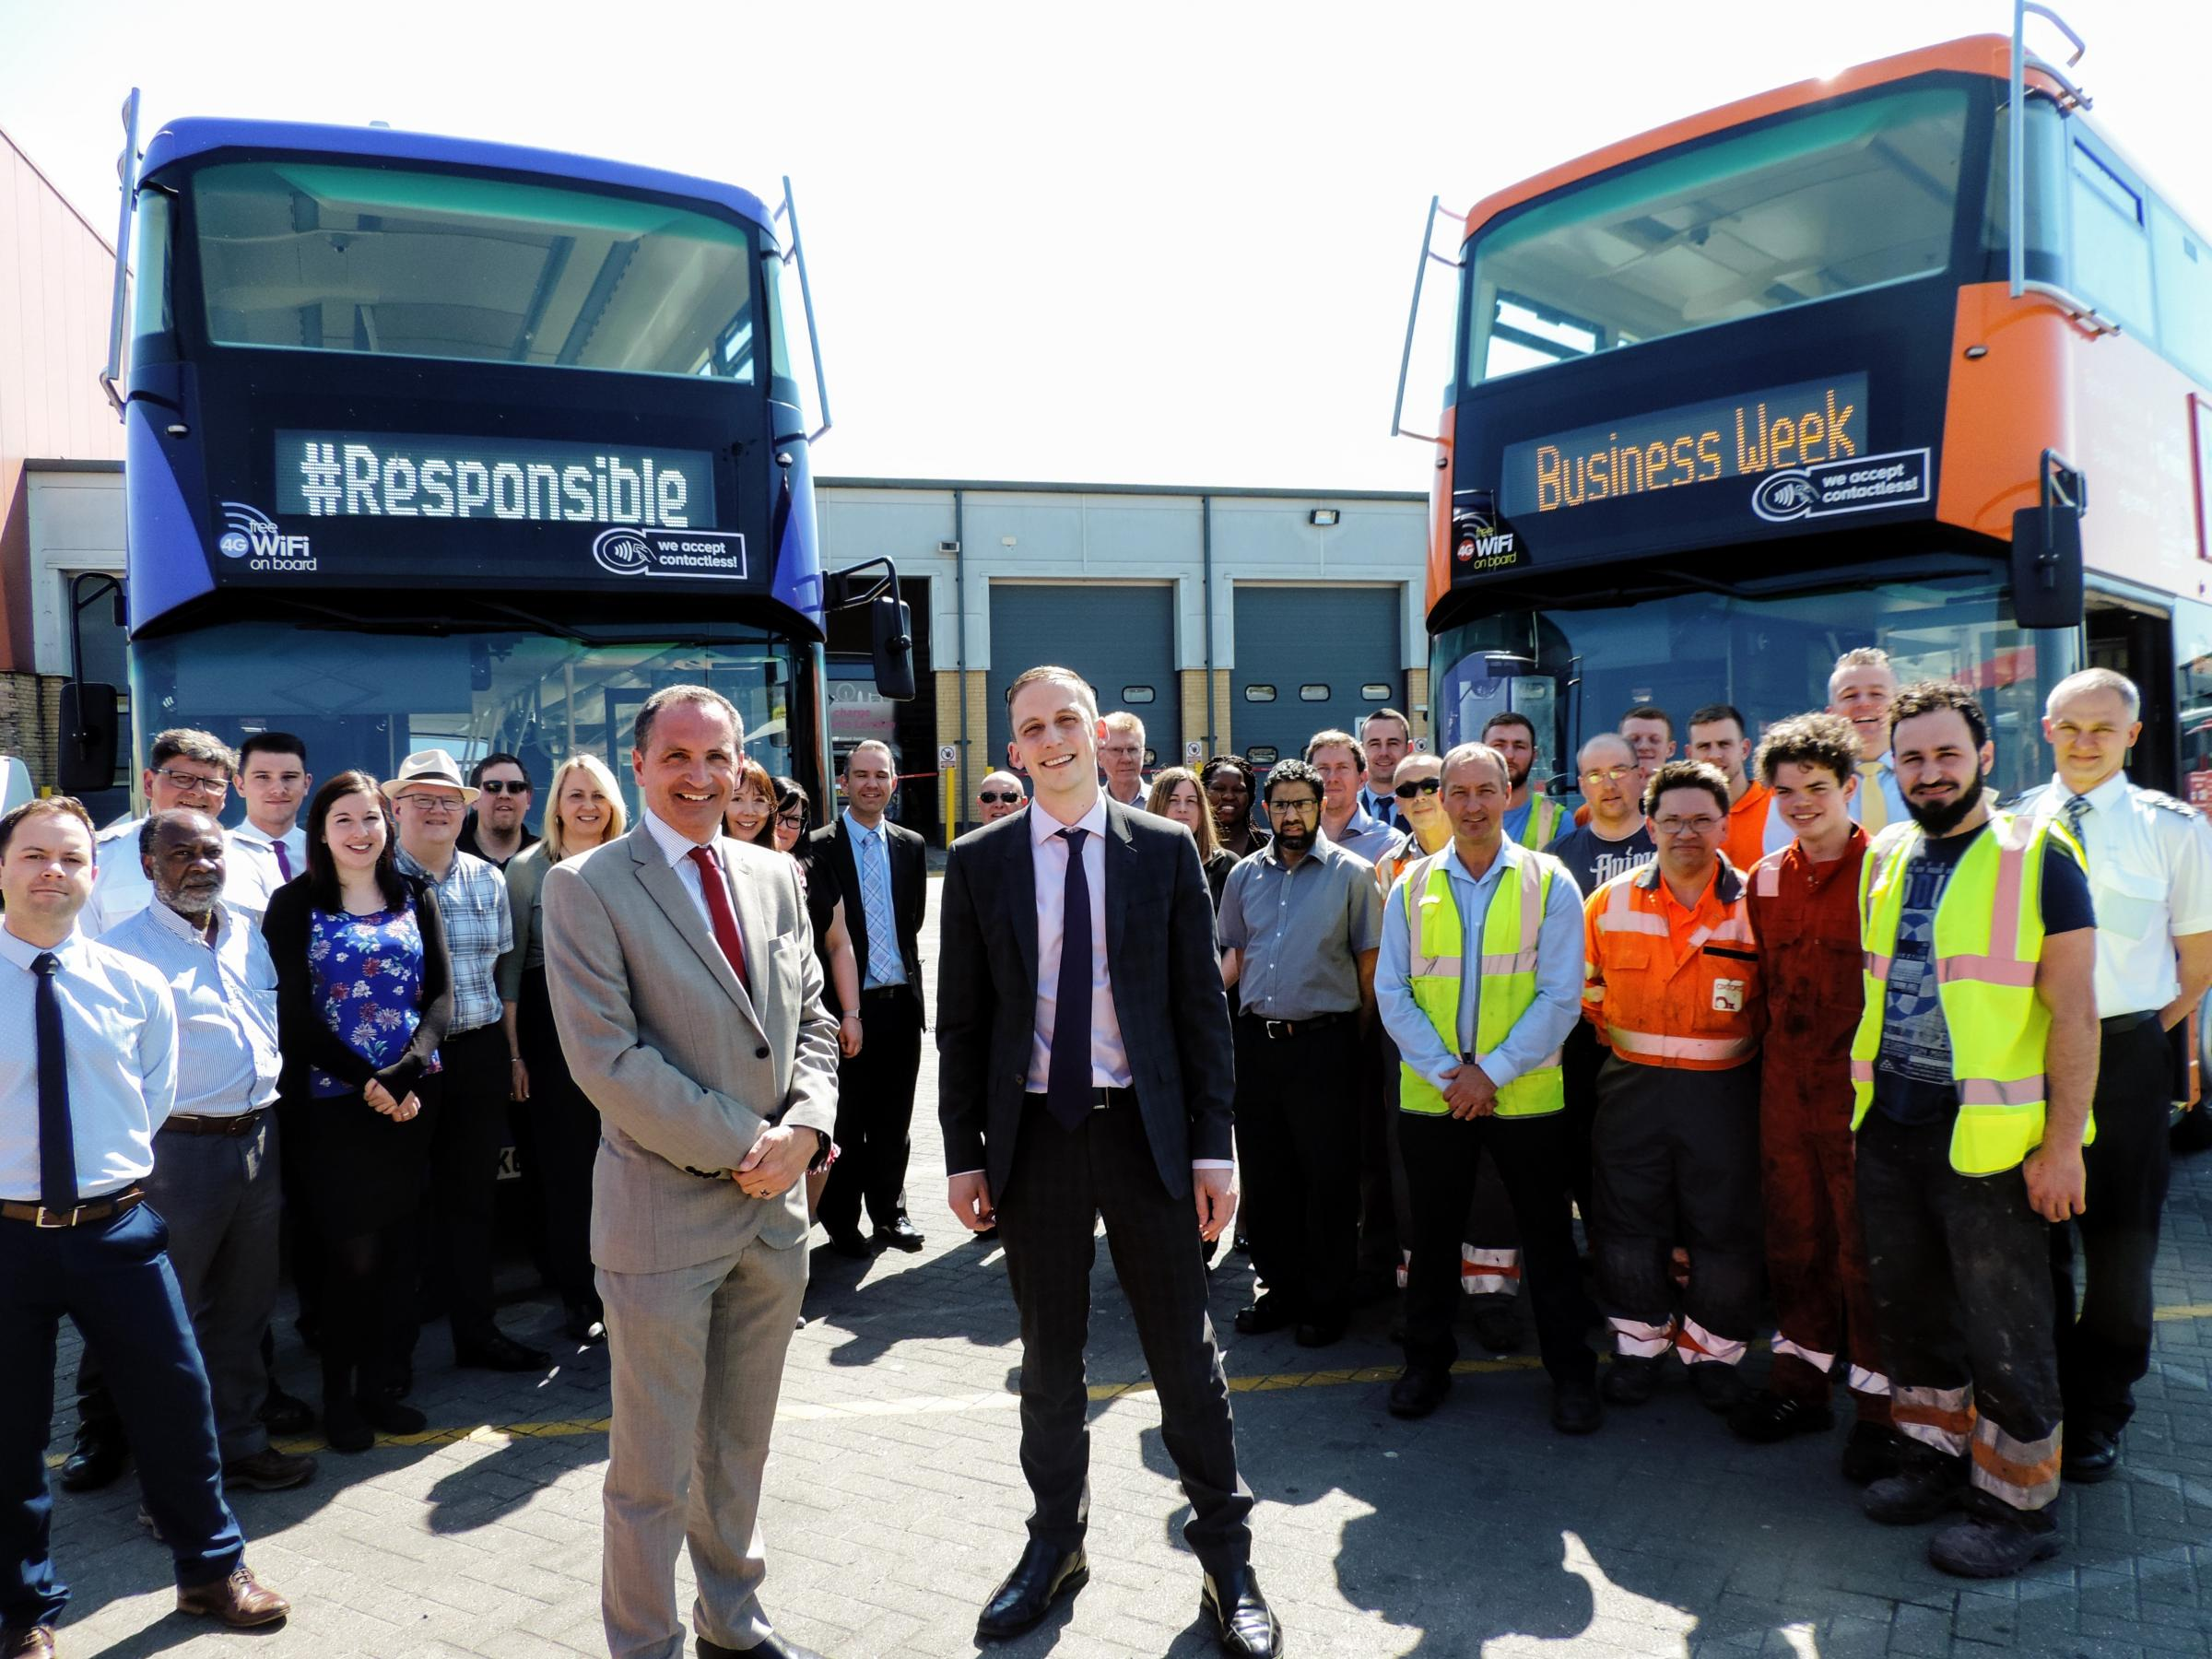 Oxford Bus Company managing director Phil Southall, left, with finance director Luke Marion and other staff. Pic Greig Box Turnbull